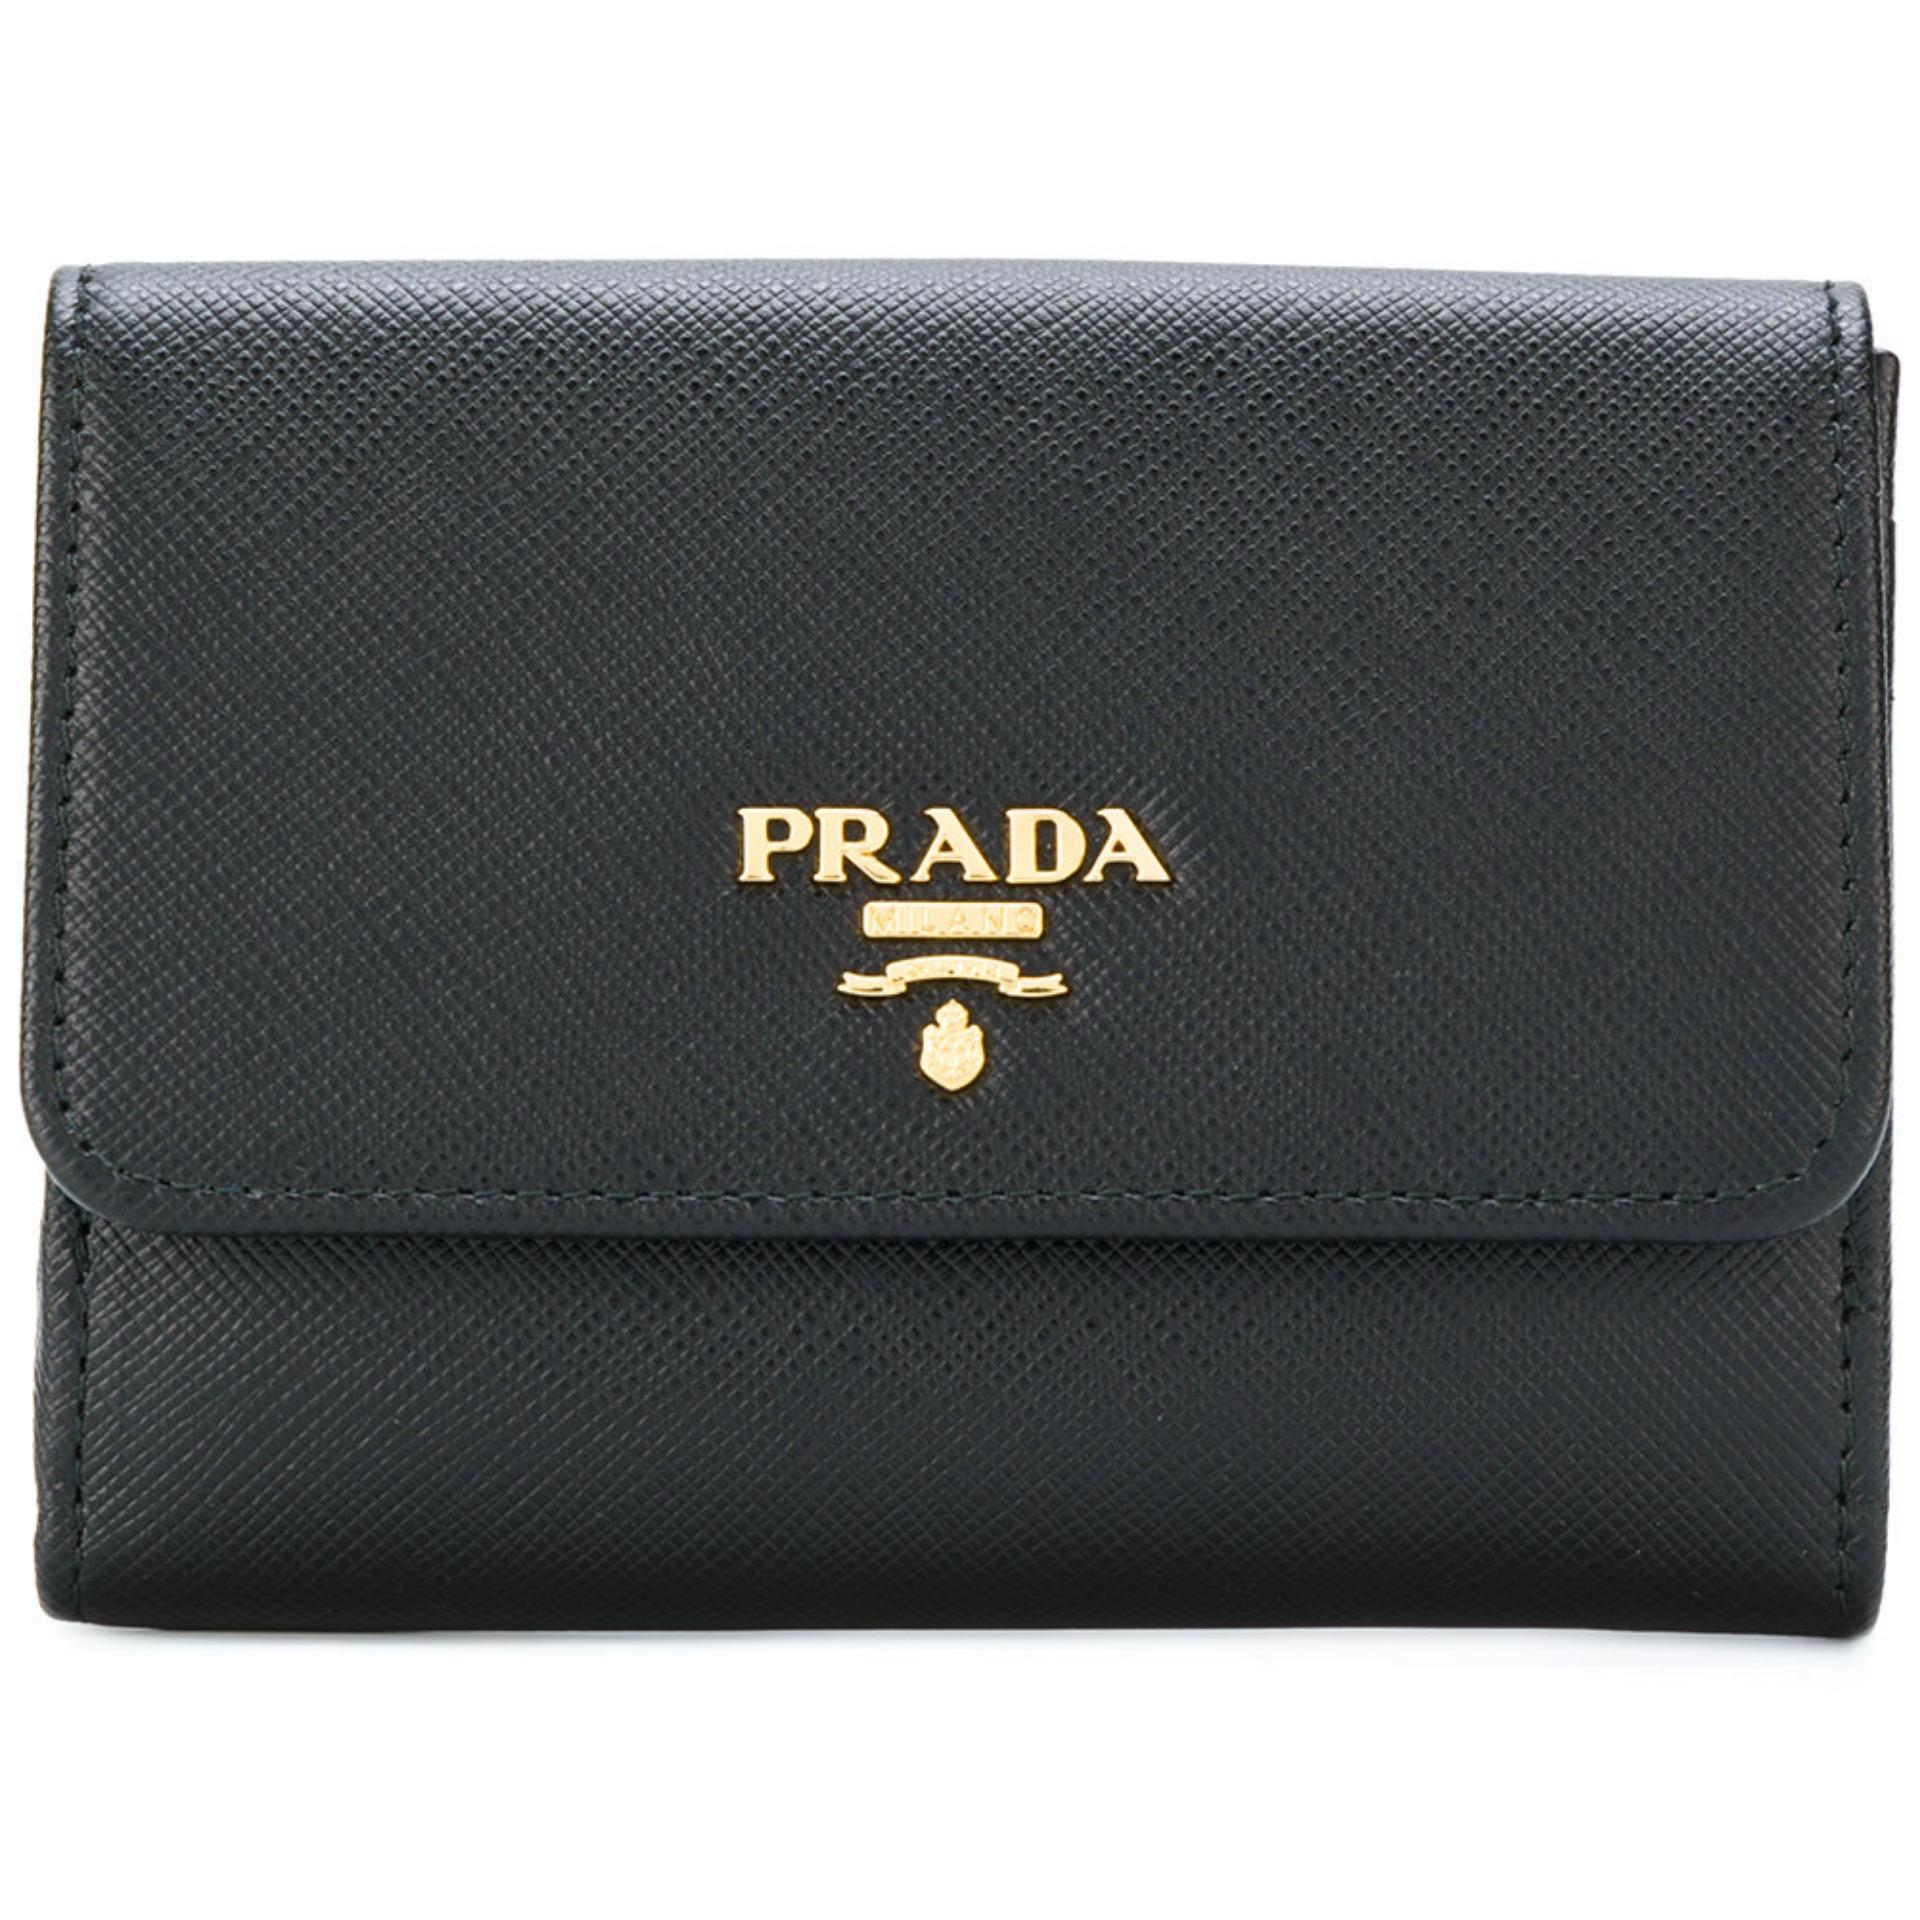 5c7374a16095 Latest Prada Women Wallets Products | Enjoy Huge Discounts | Lazada SG